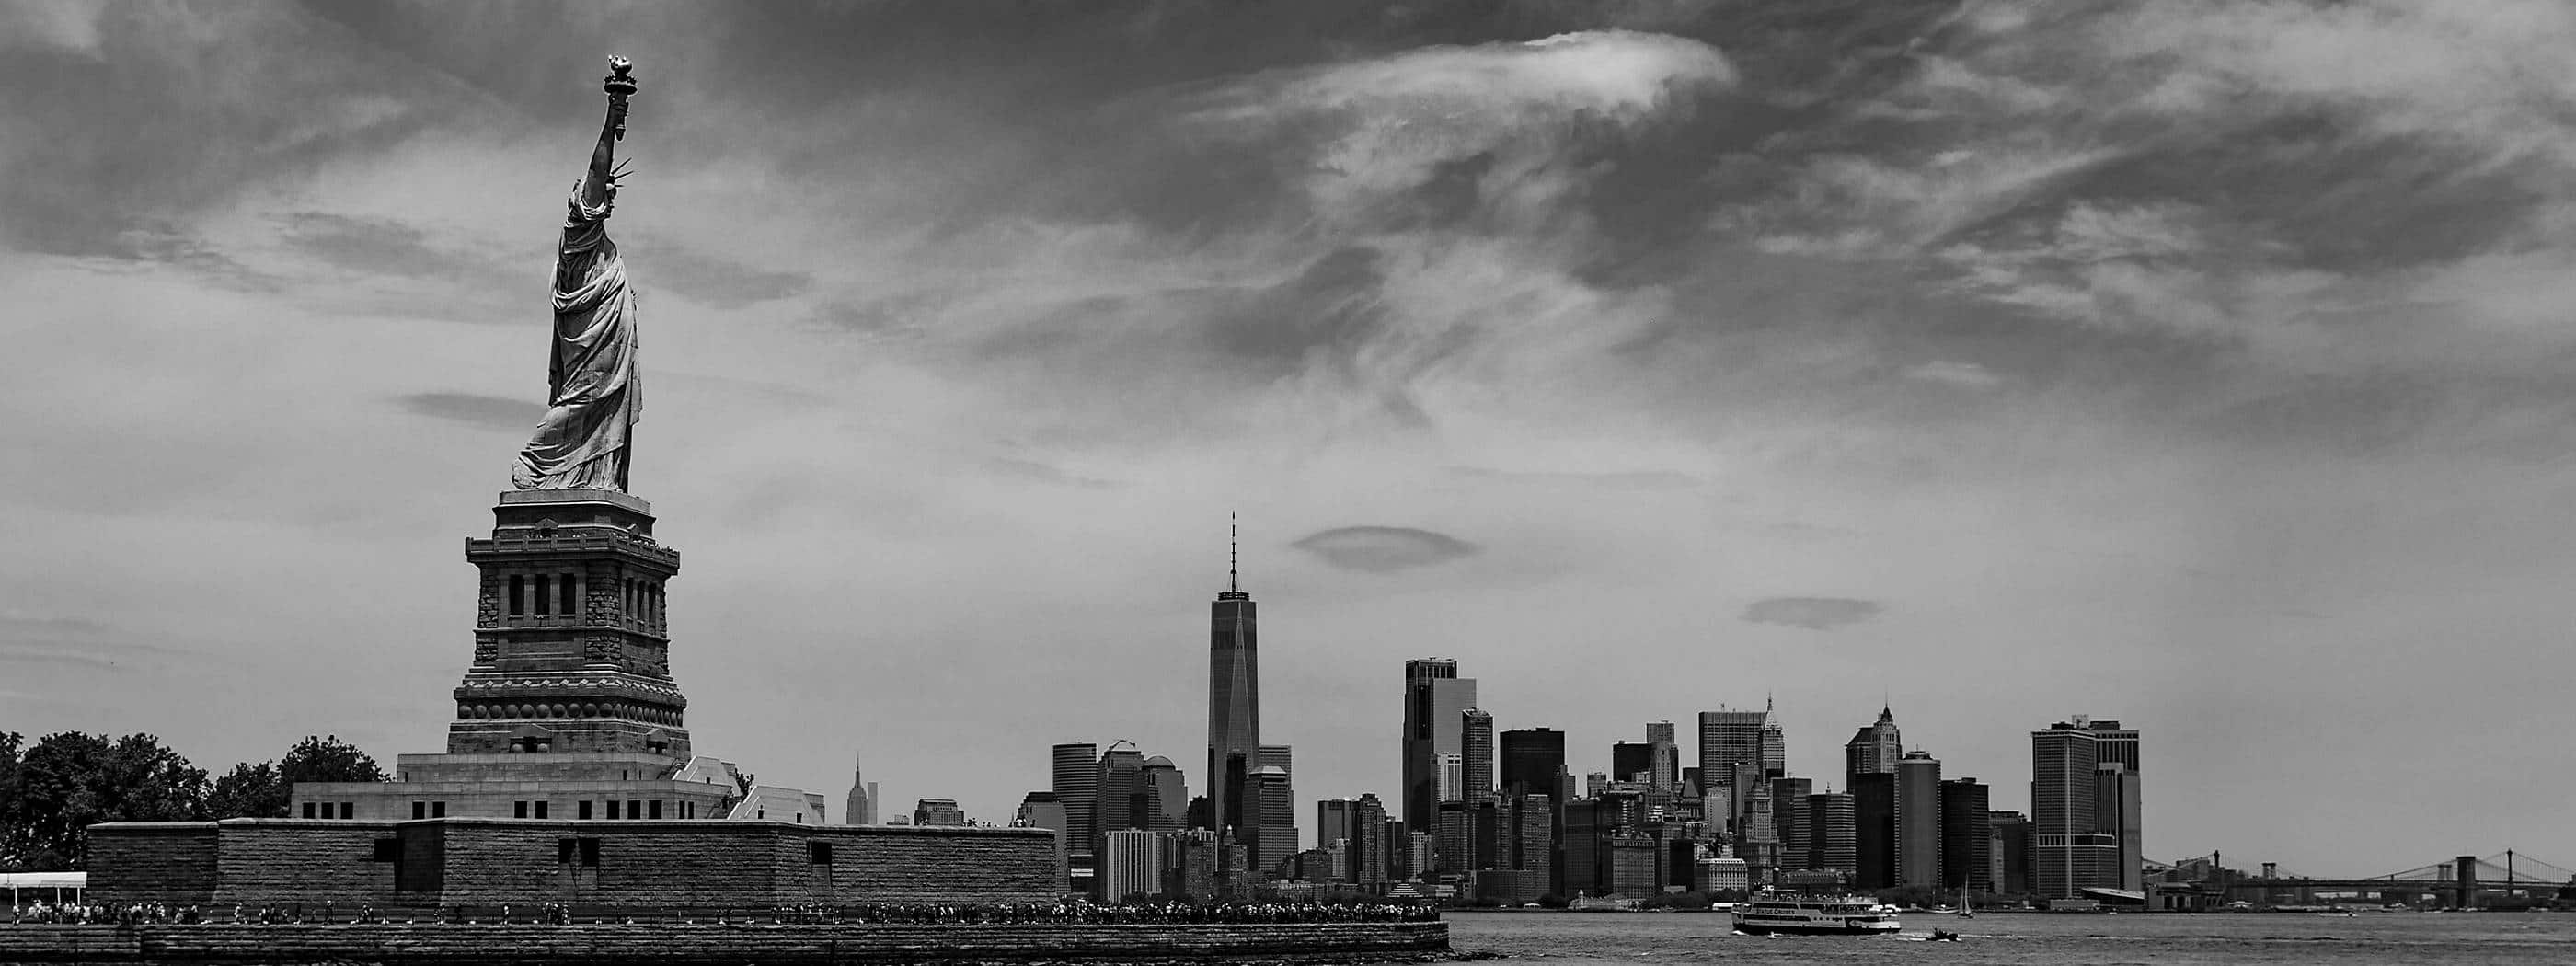 A black-and-white photo shows the Statue of Liberty to the left of the Manhattan skyline.